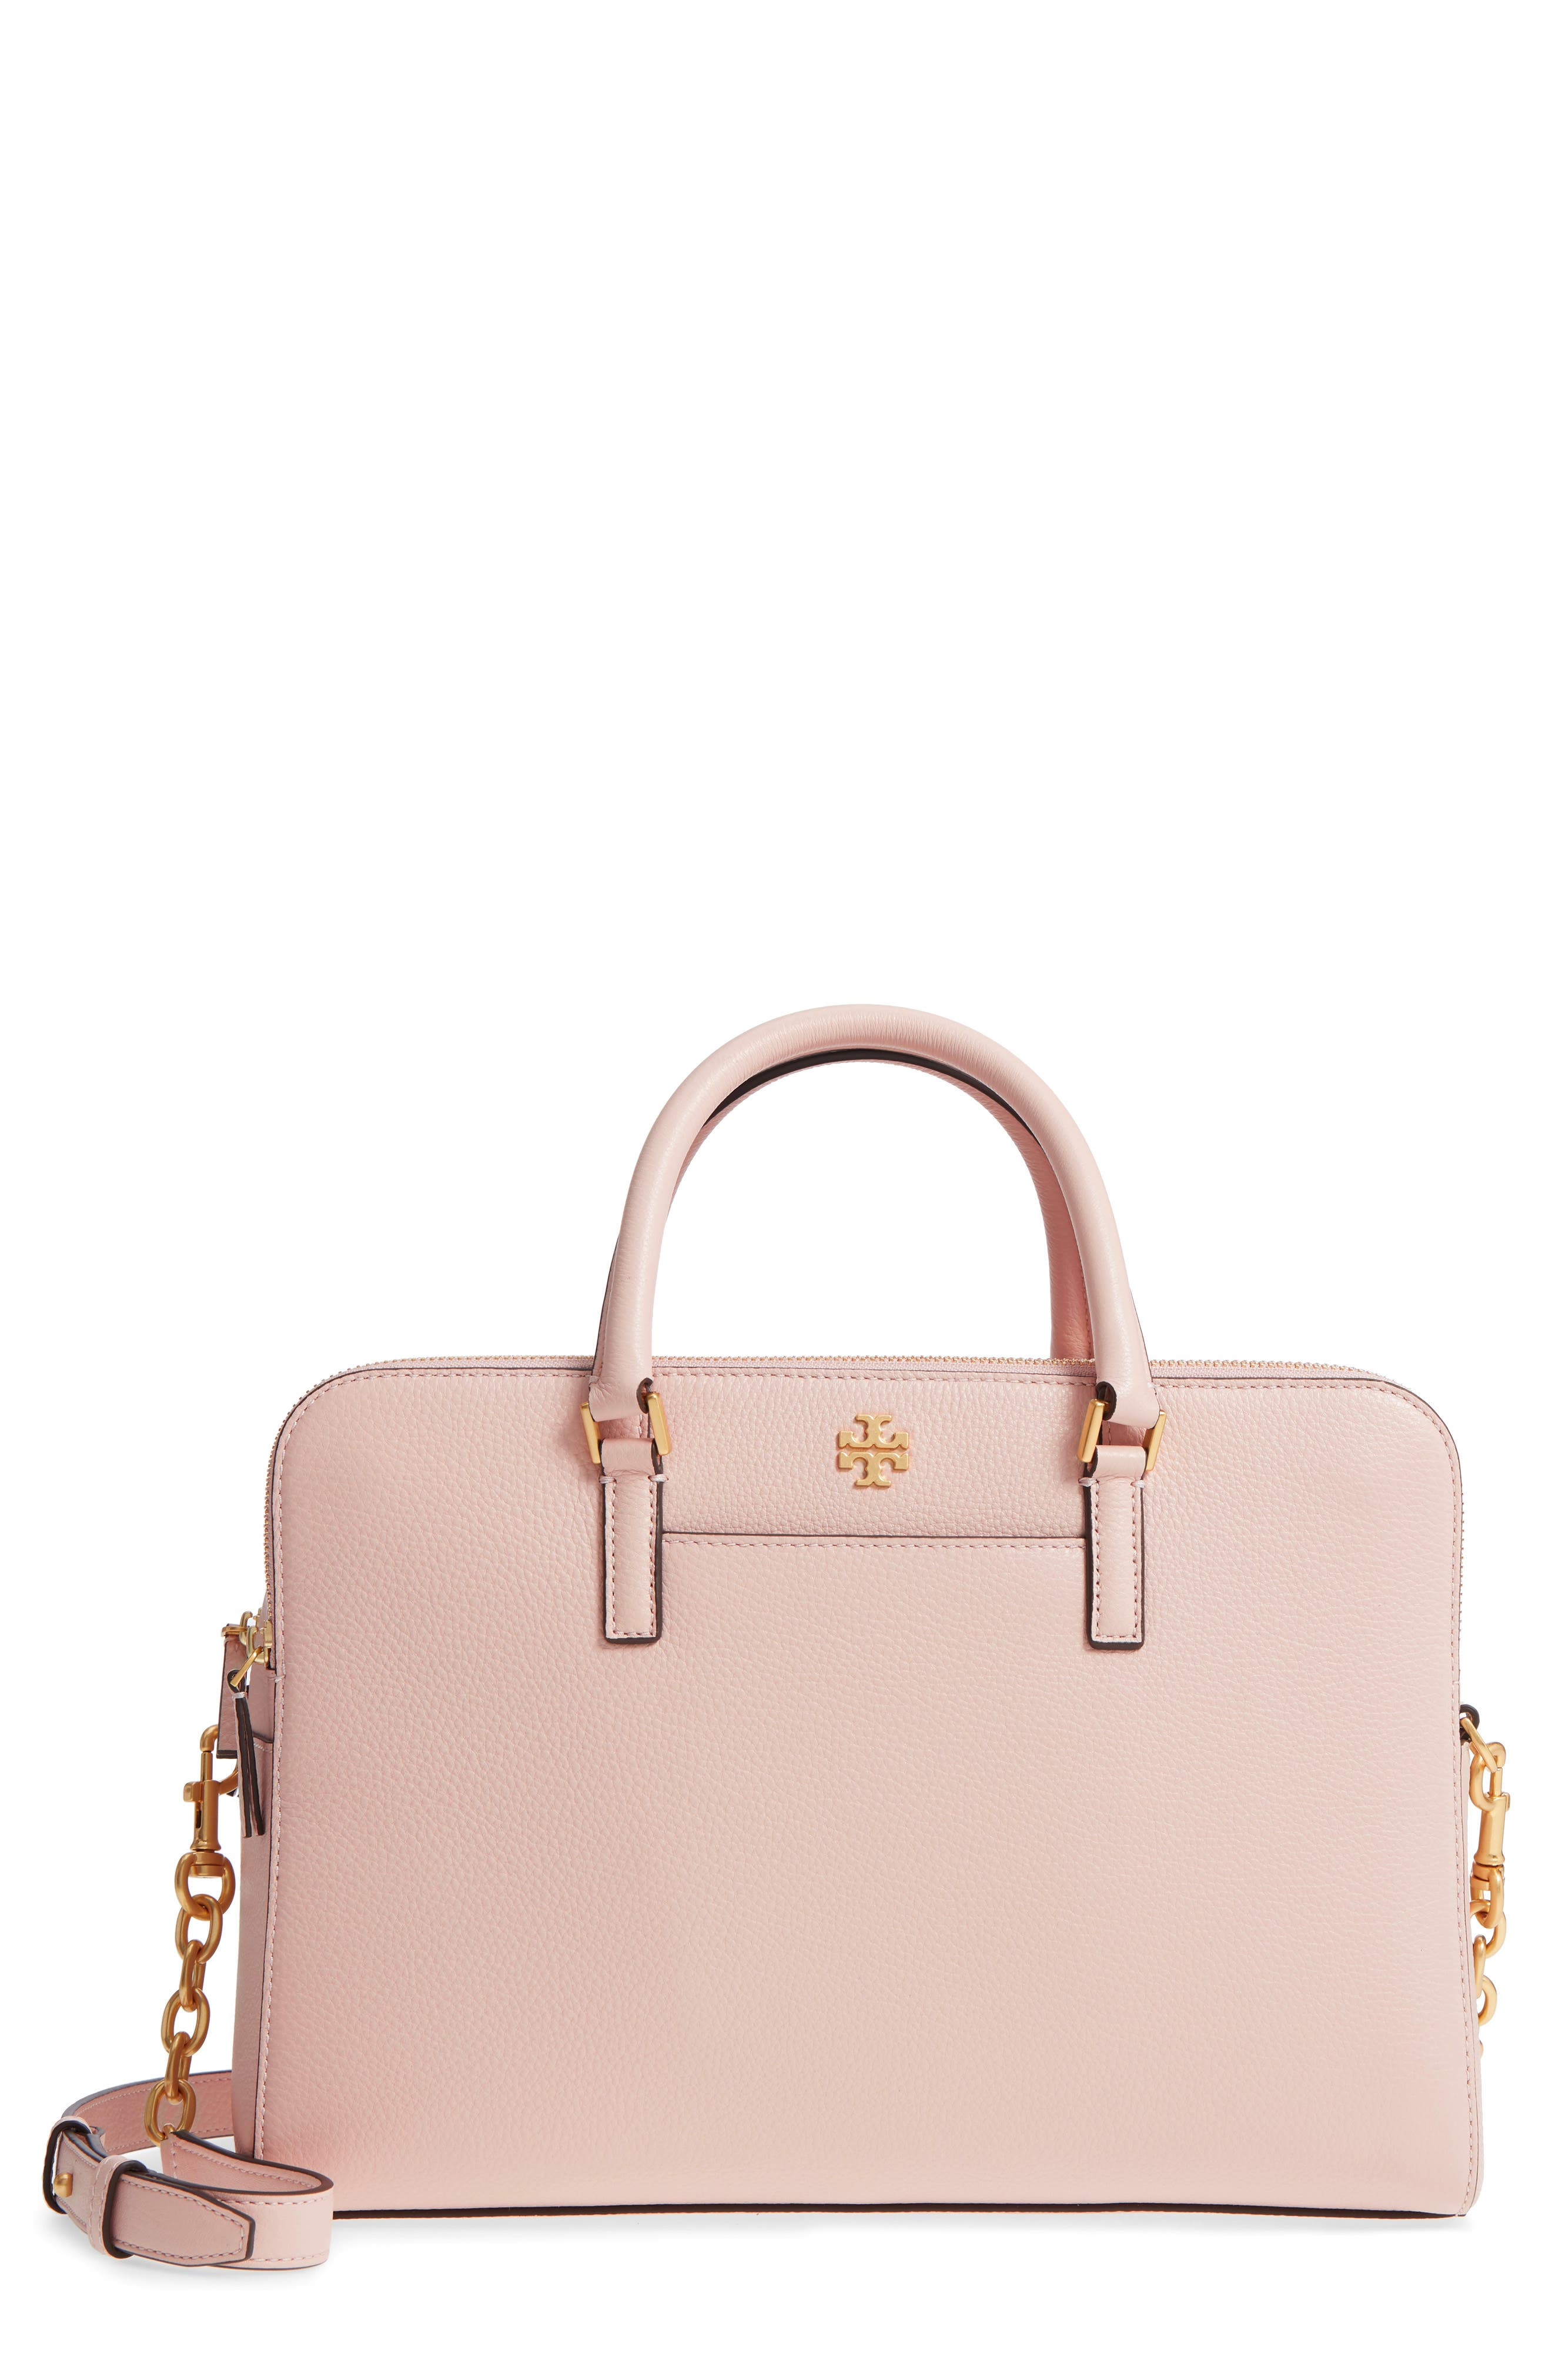 Georgia Double Zip Pebbled Leather Satchel,                         Main,                         color, Shell Pink